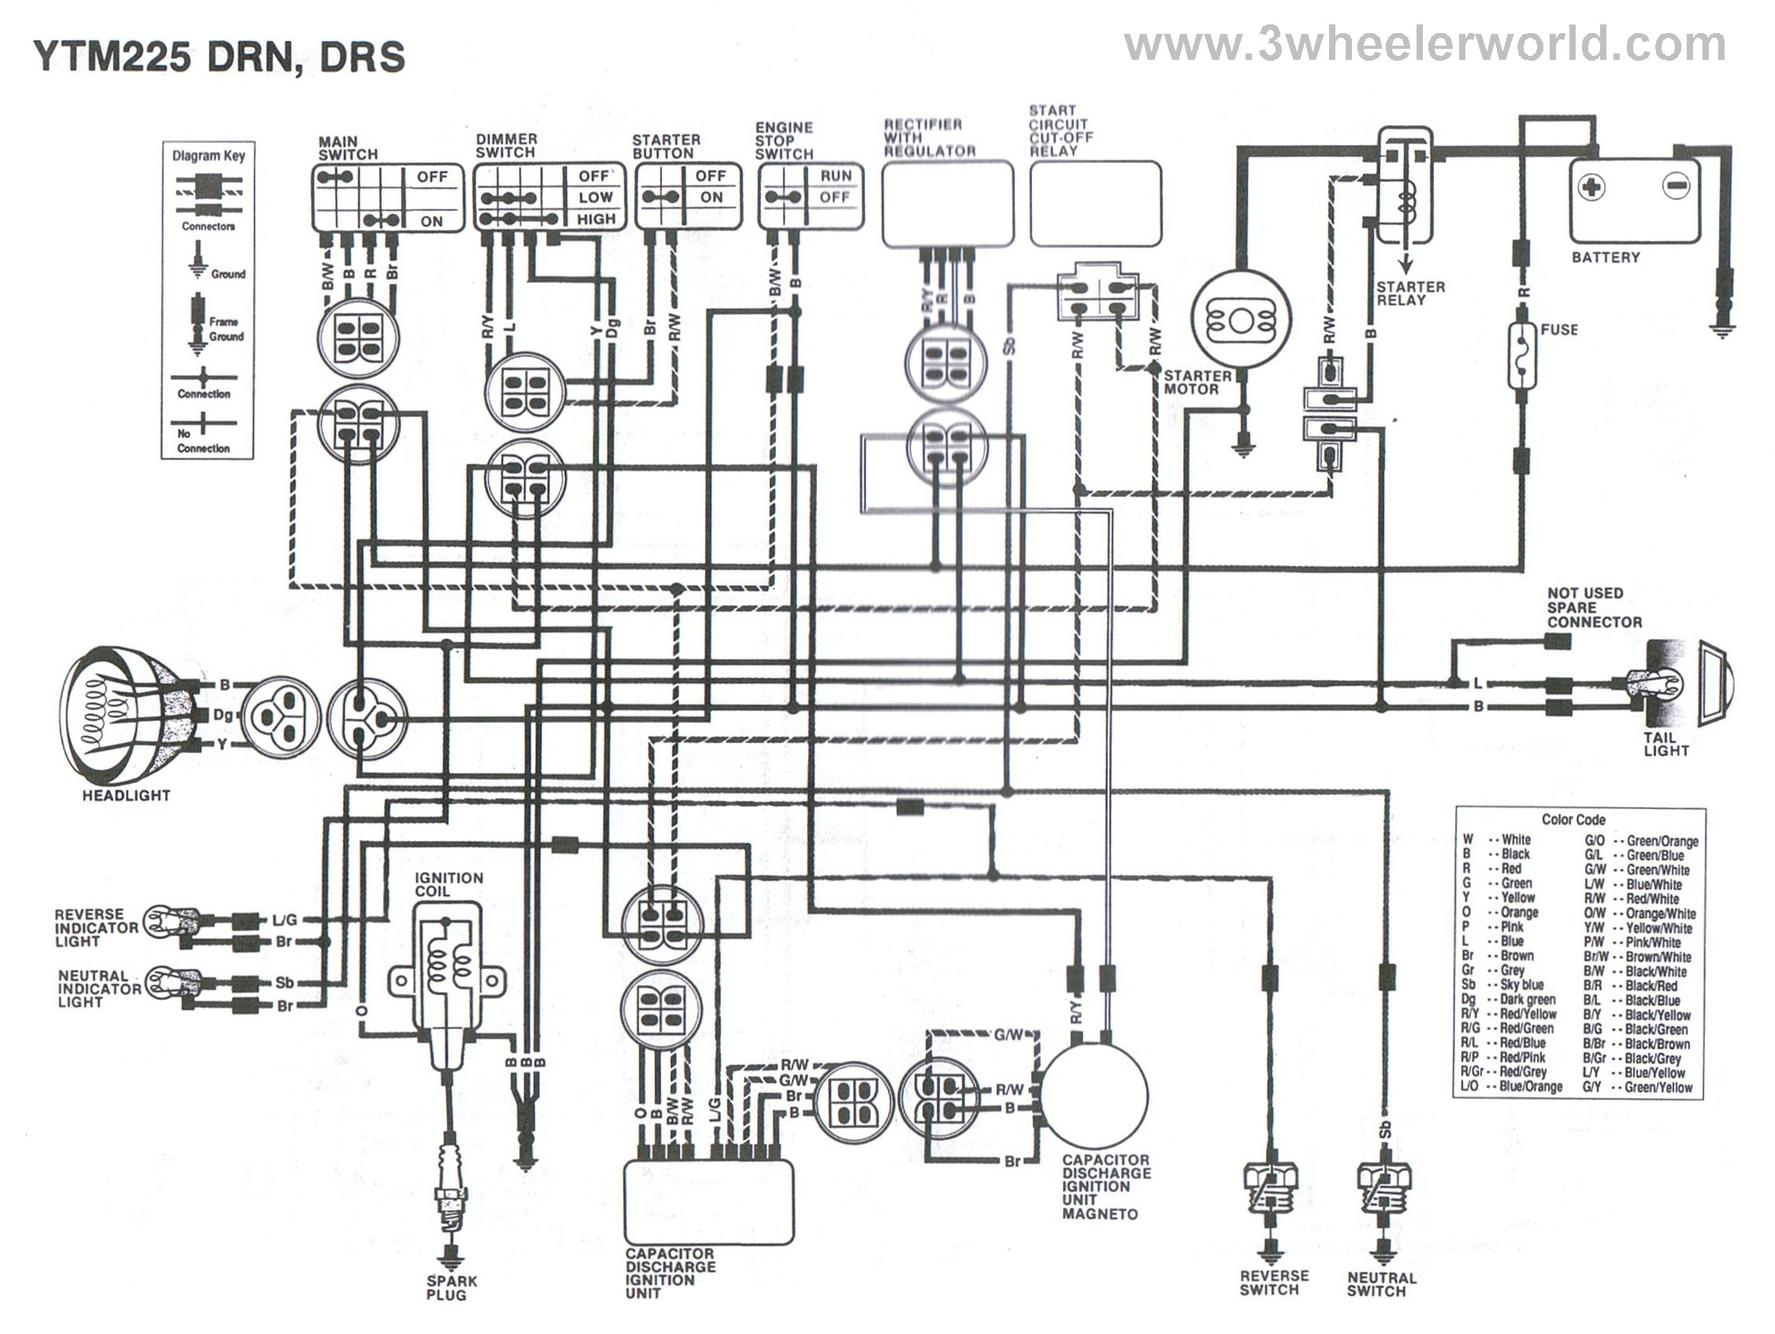 DIAGRAM] 89 Yamaha Wiring Diagrams FULL Version HD Quality Wiring Diagrams  - CM631UDWIRING.CONCESSIONARIABELOGISENIGALLIA.ITconcessionariabelogisenigallia.it